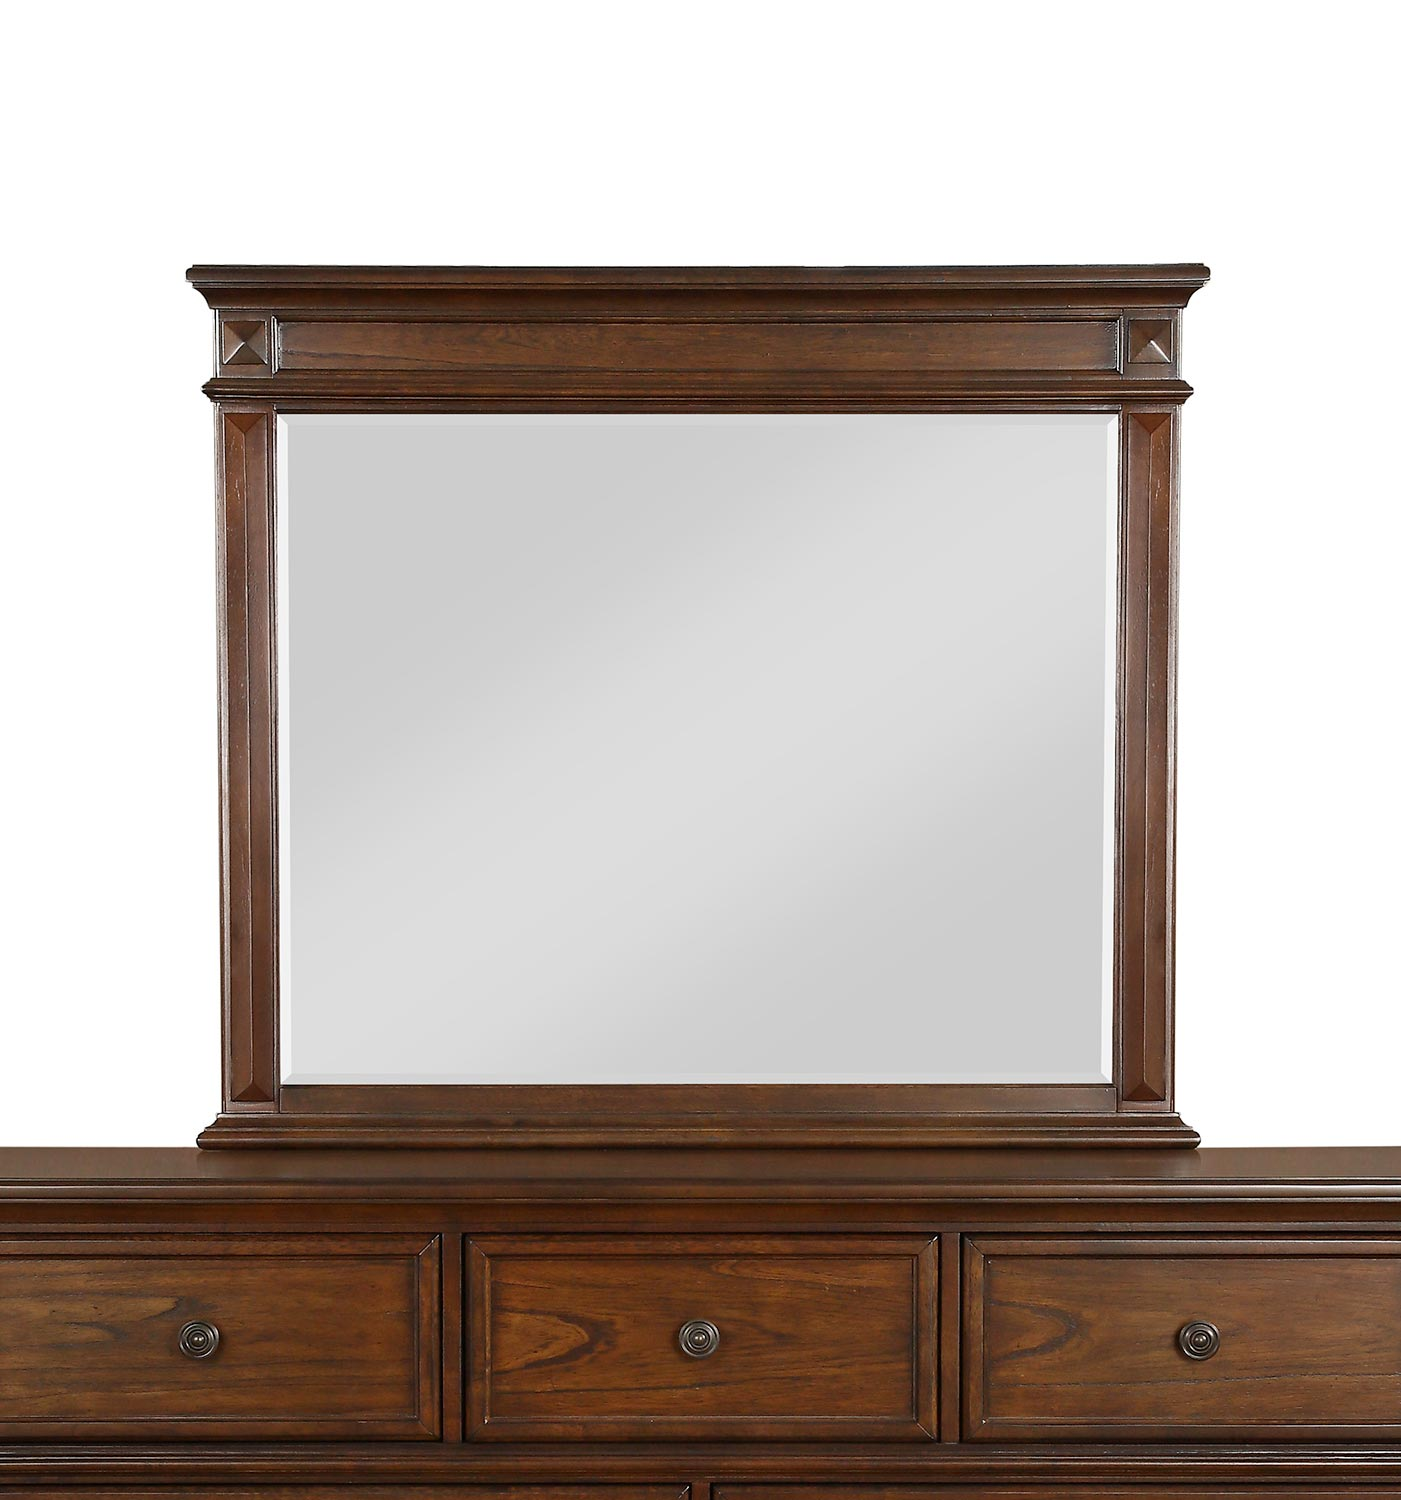 Homelegance Langsat Mirror - Brown